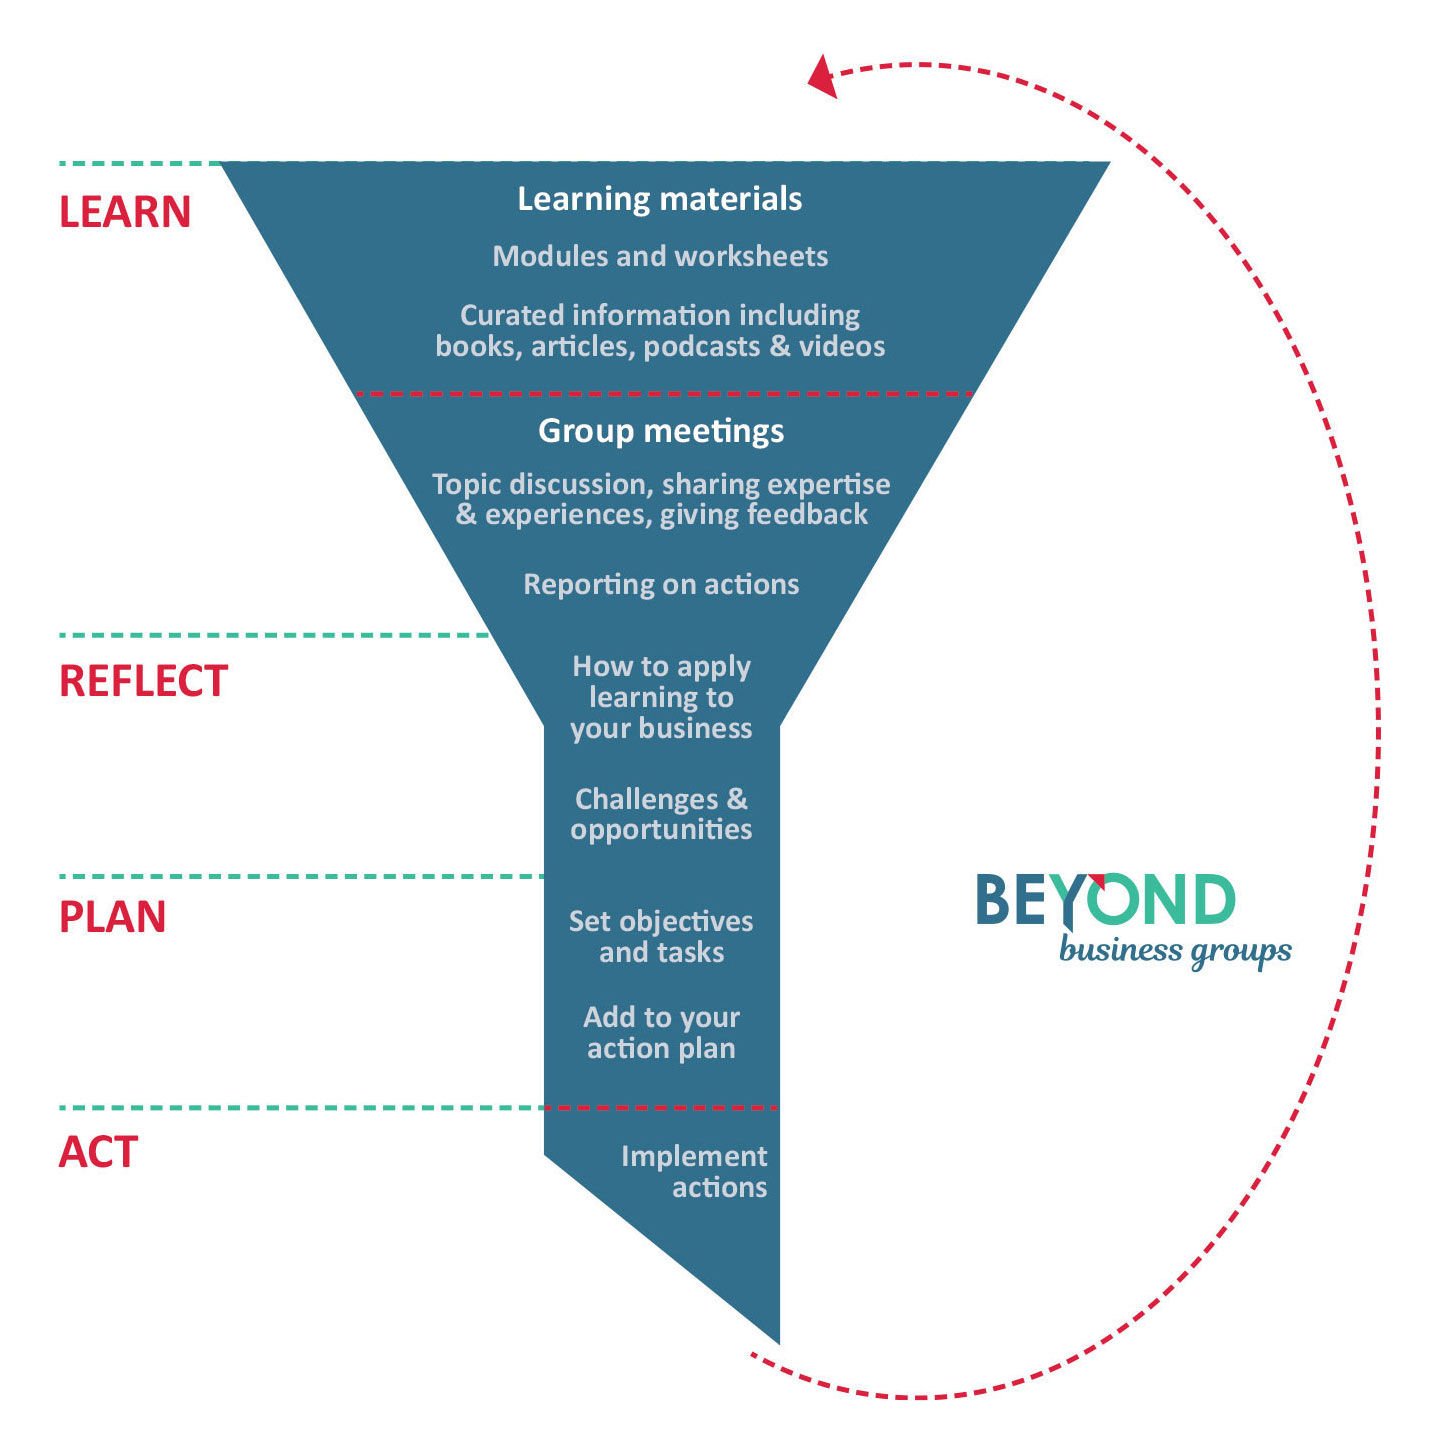 Our action learning model infographic showing: learn, reflect, plan and act stages of Beyond Business Groups learning.